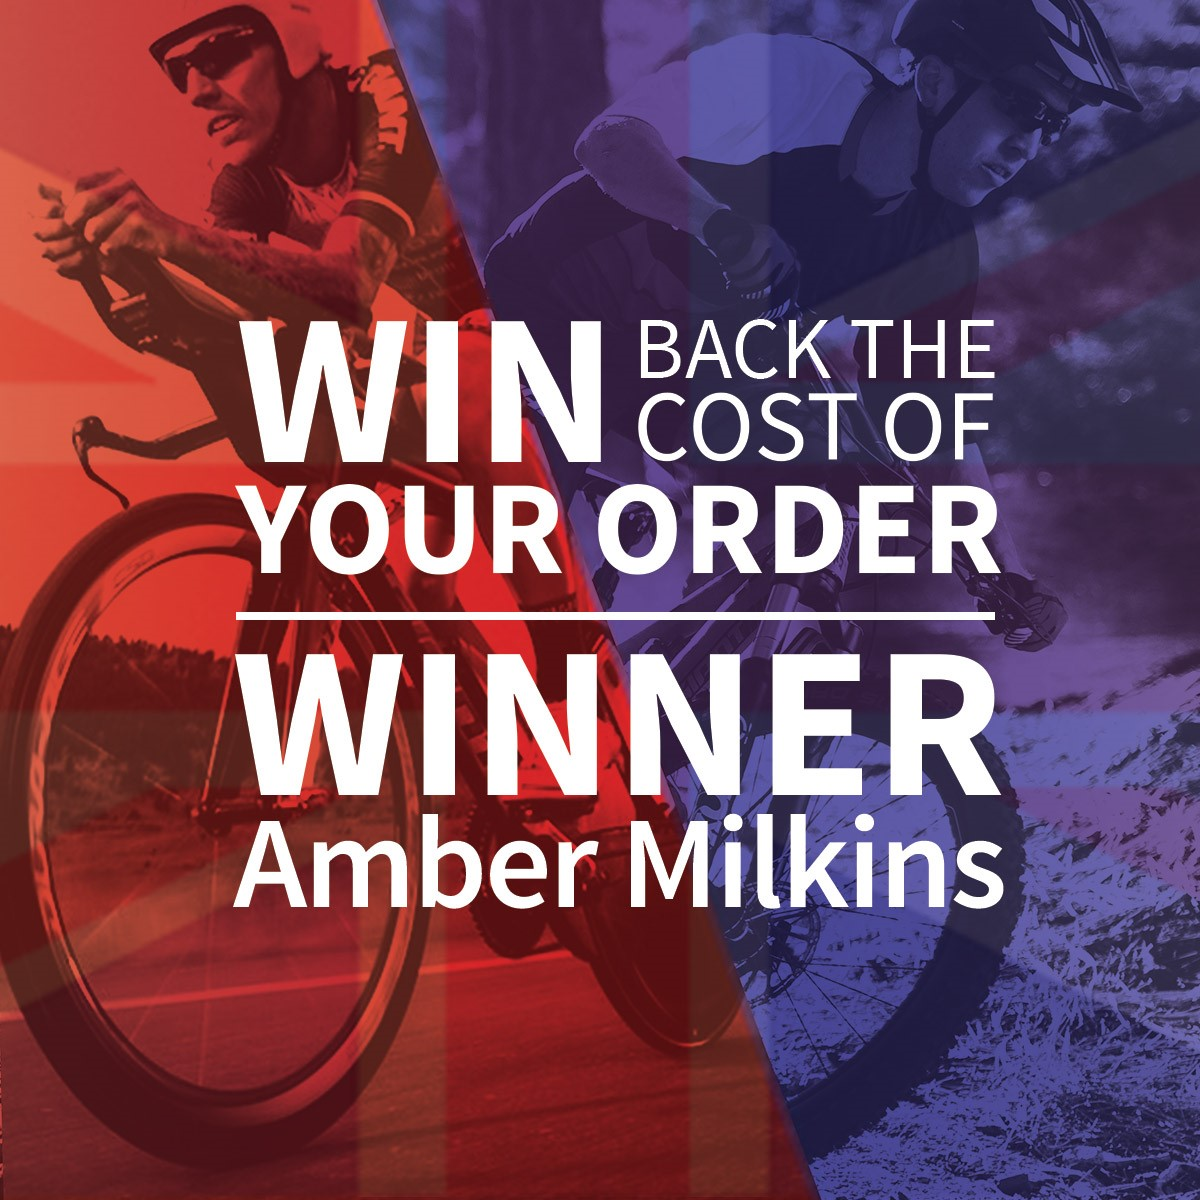 Win back the cost of your order winner - Amber Milkins